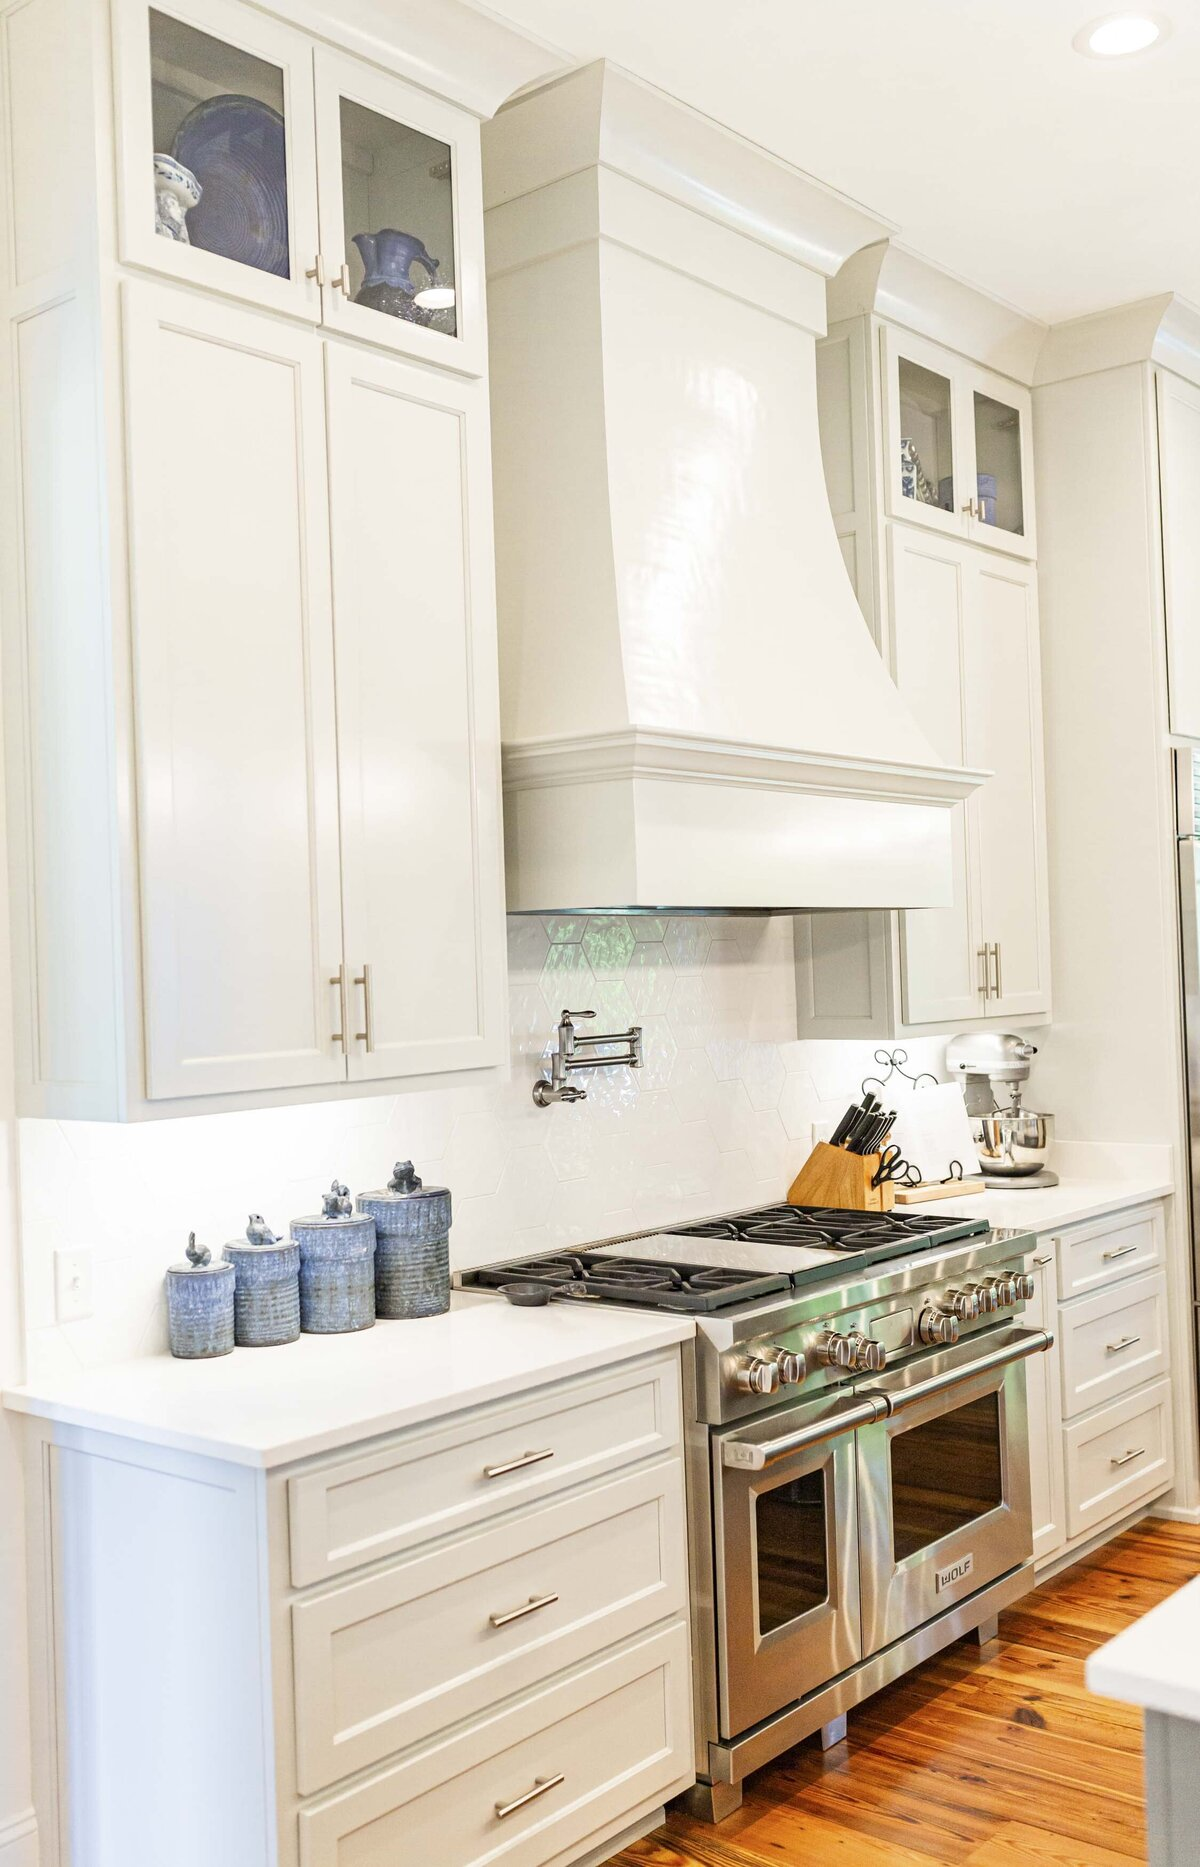 mississippi-kitchen-dining-room-renovations5